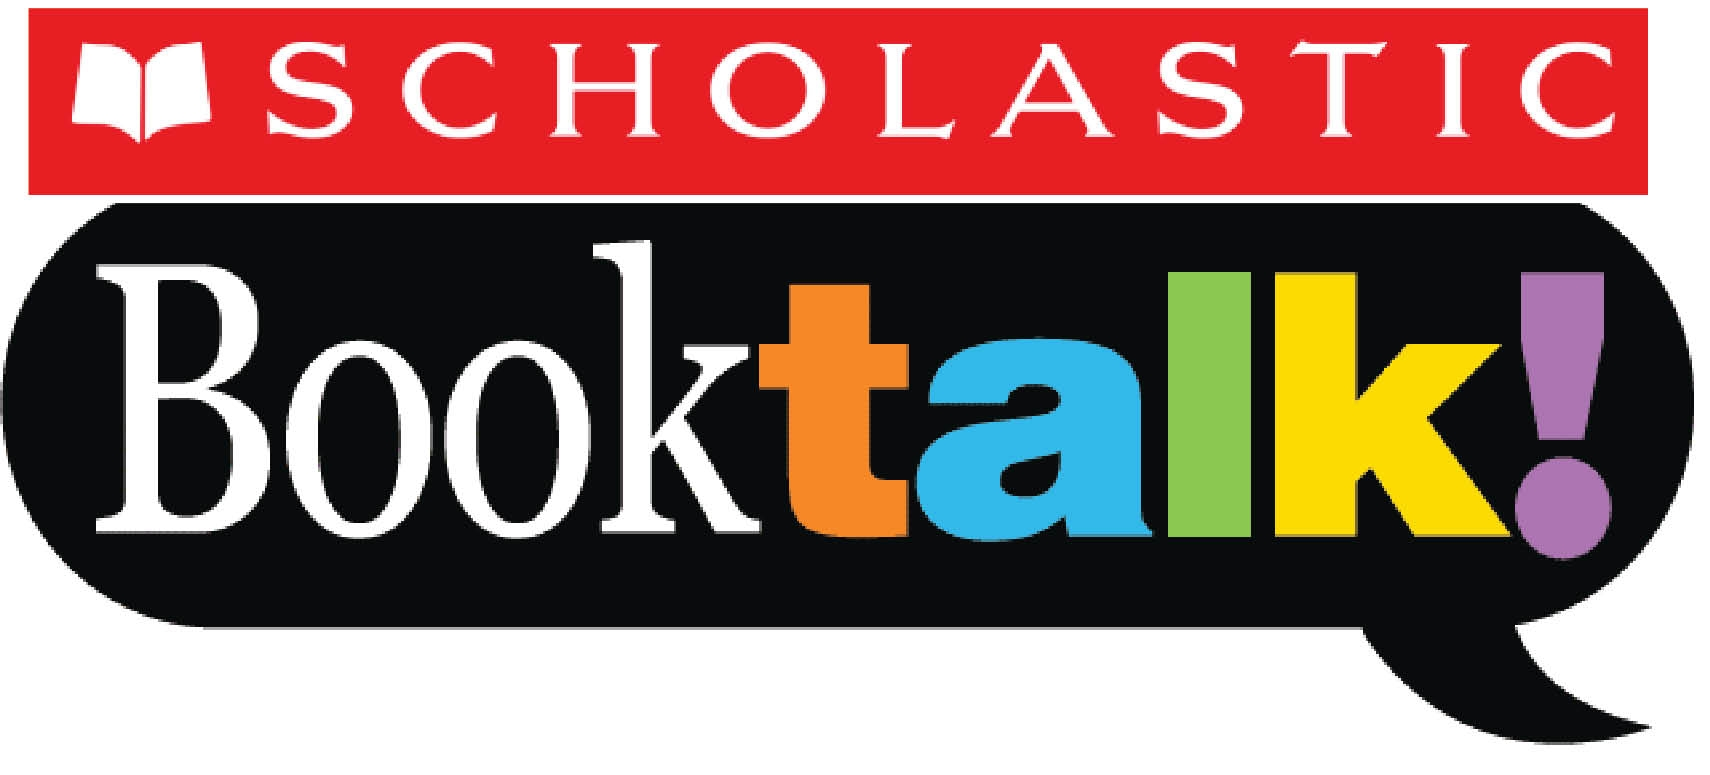 Booktalk examples from Scholastic